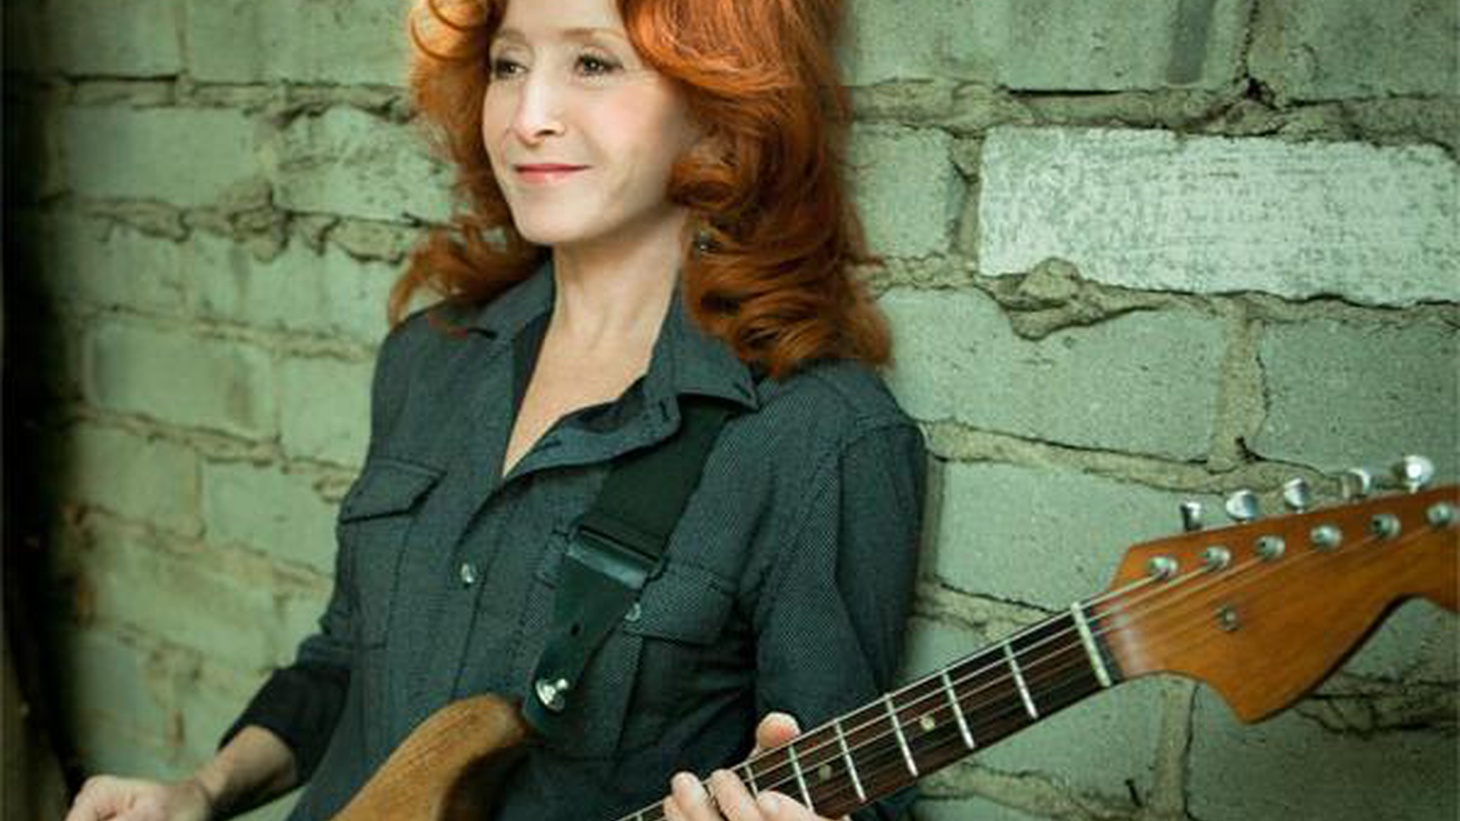 During a 7-year recording hiatus, Bonnie Raitt became an observer, watching performances by world musicians and the symphony. Now she's back with an inspired set of songs.